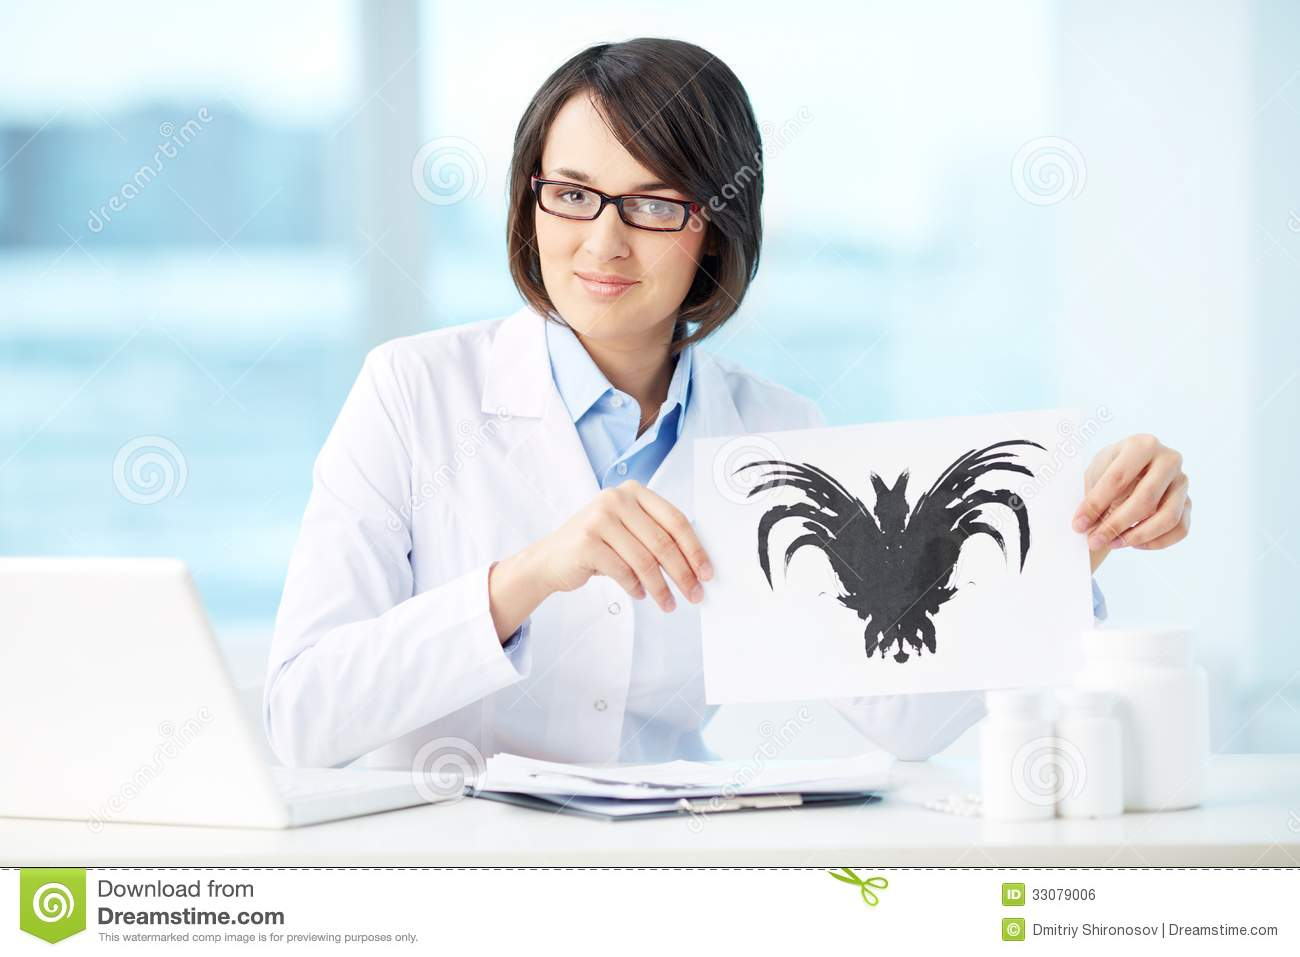 rorschach test research paper Psychology essay: the rorschach test posted on august 20, 2015 by essayshark the best research paper topics for college students learn how our service works.